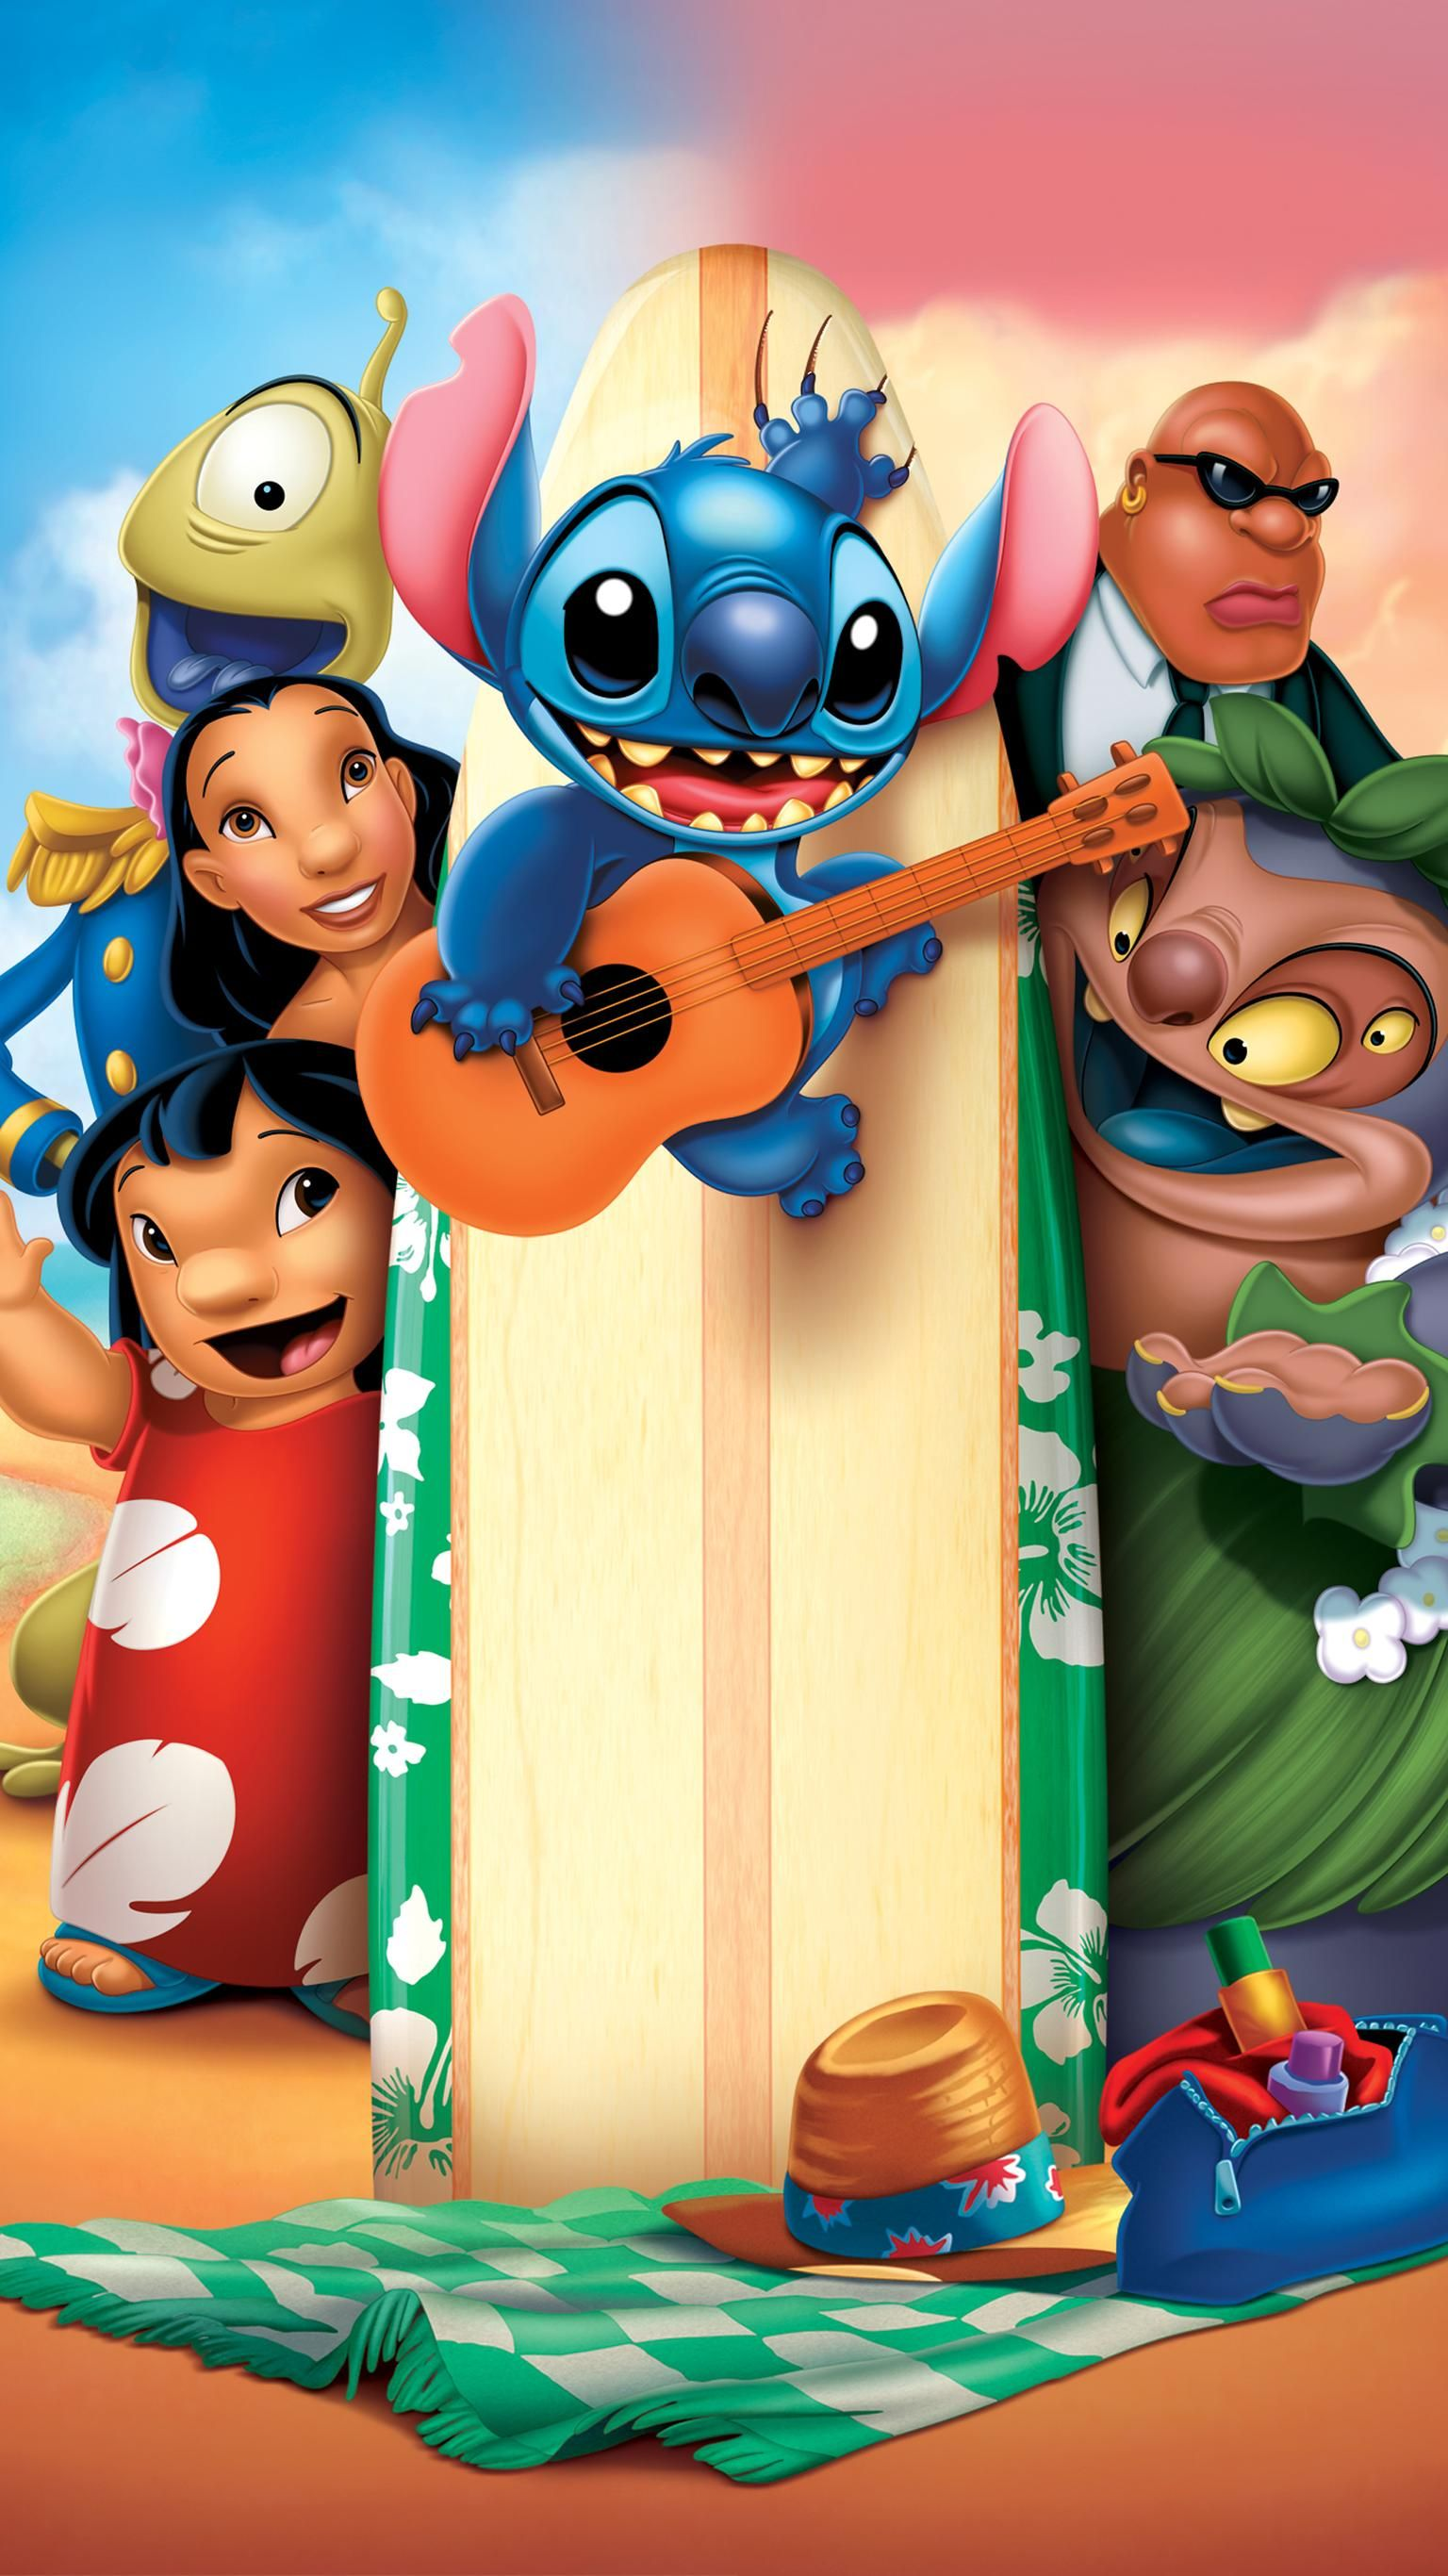 Lilo & Stitch (2002) Phone Wallpaper Disney wallpaper